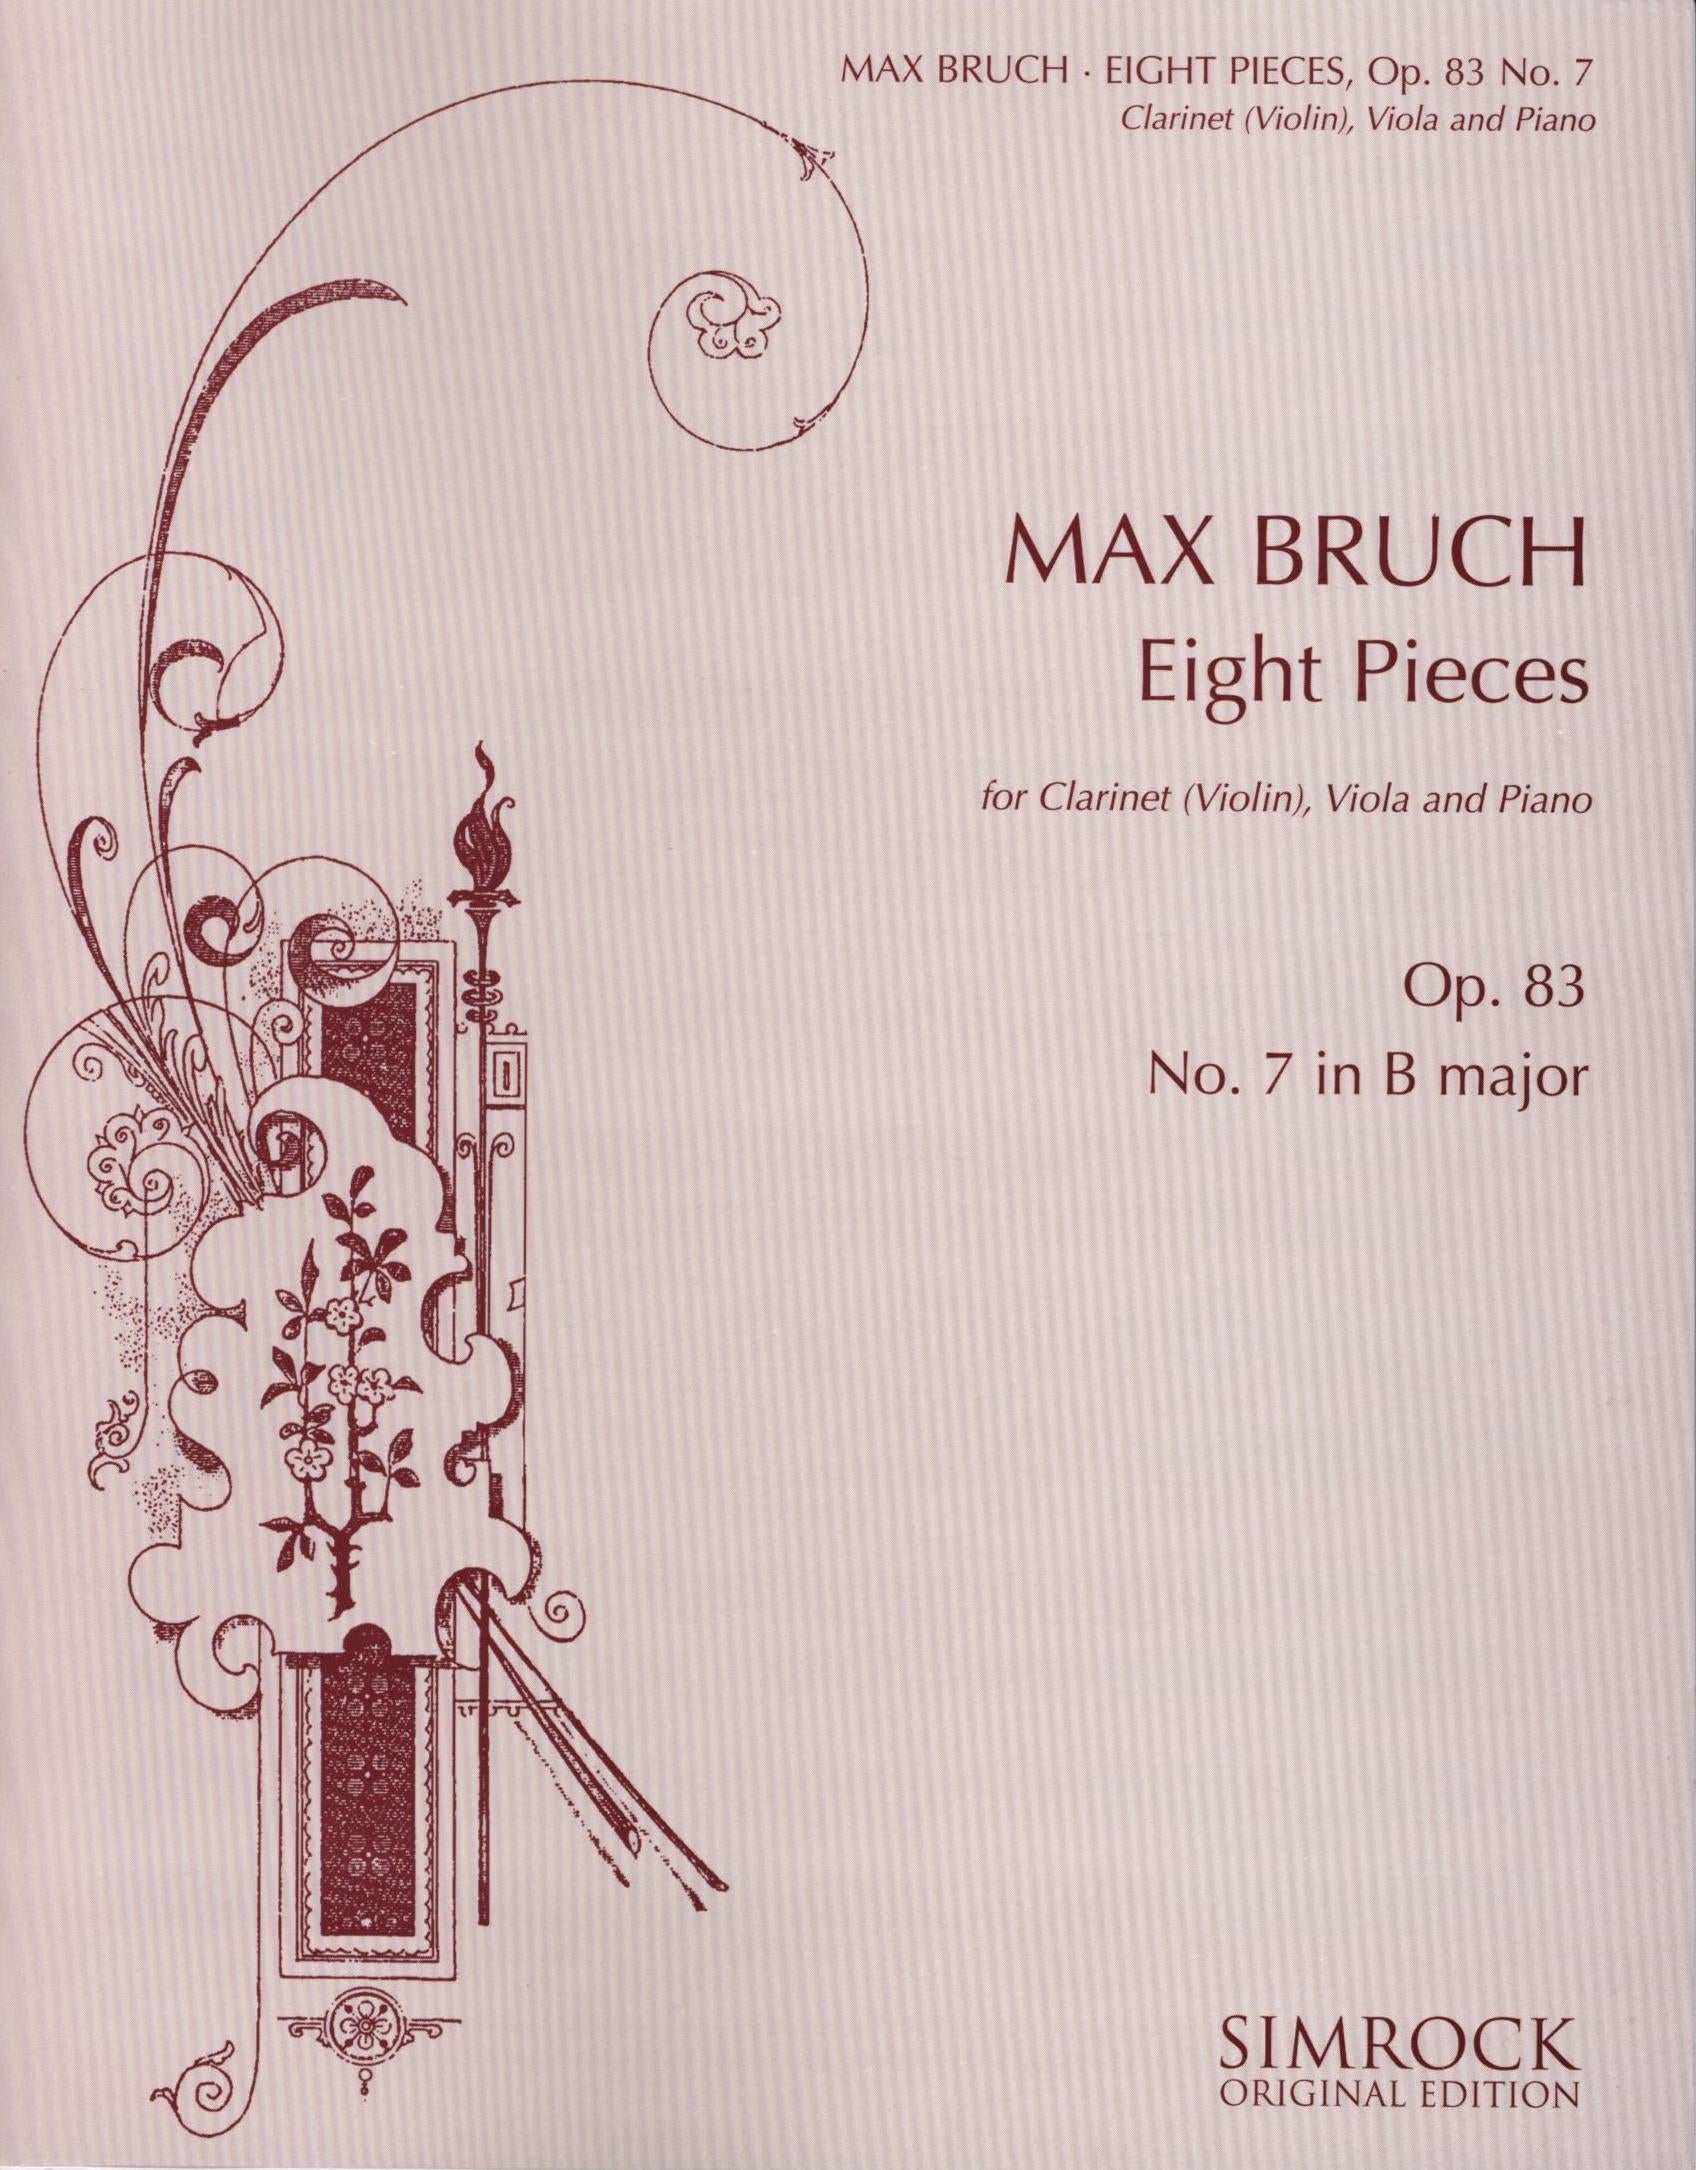 Bruch: Eight Pieces, Op. 83, No. 7